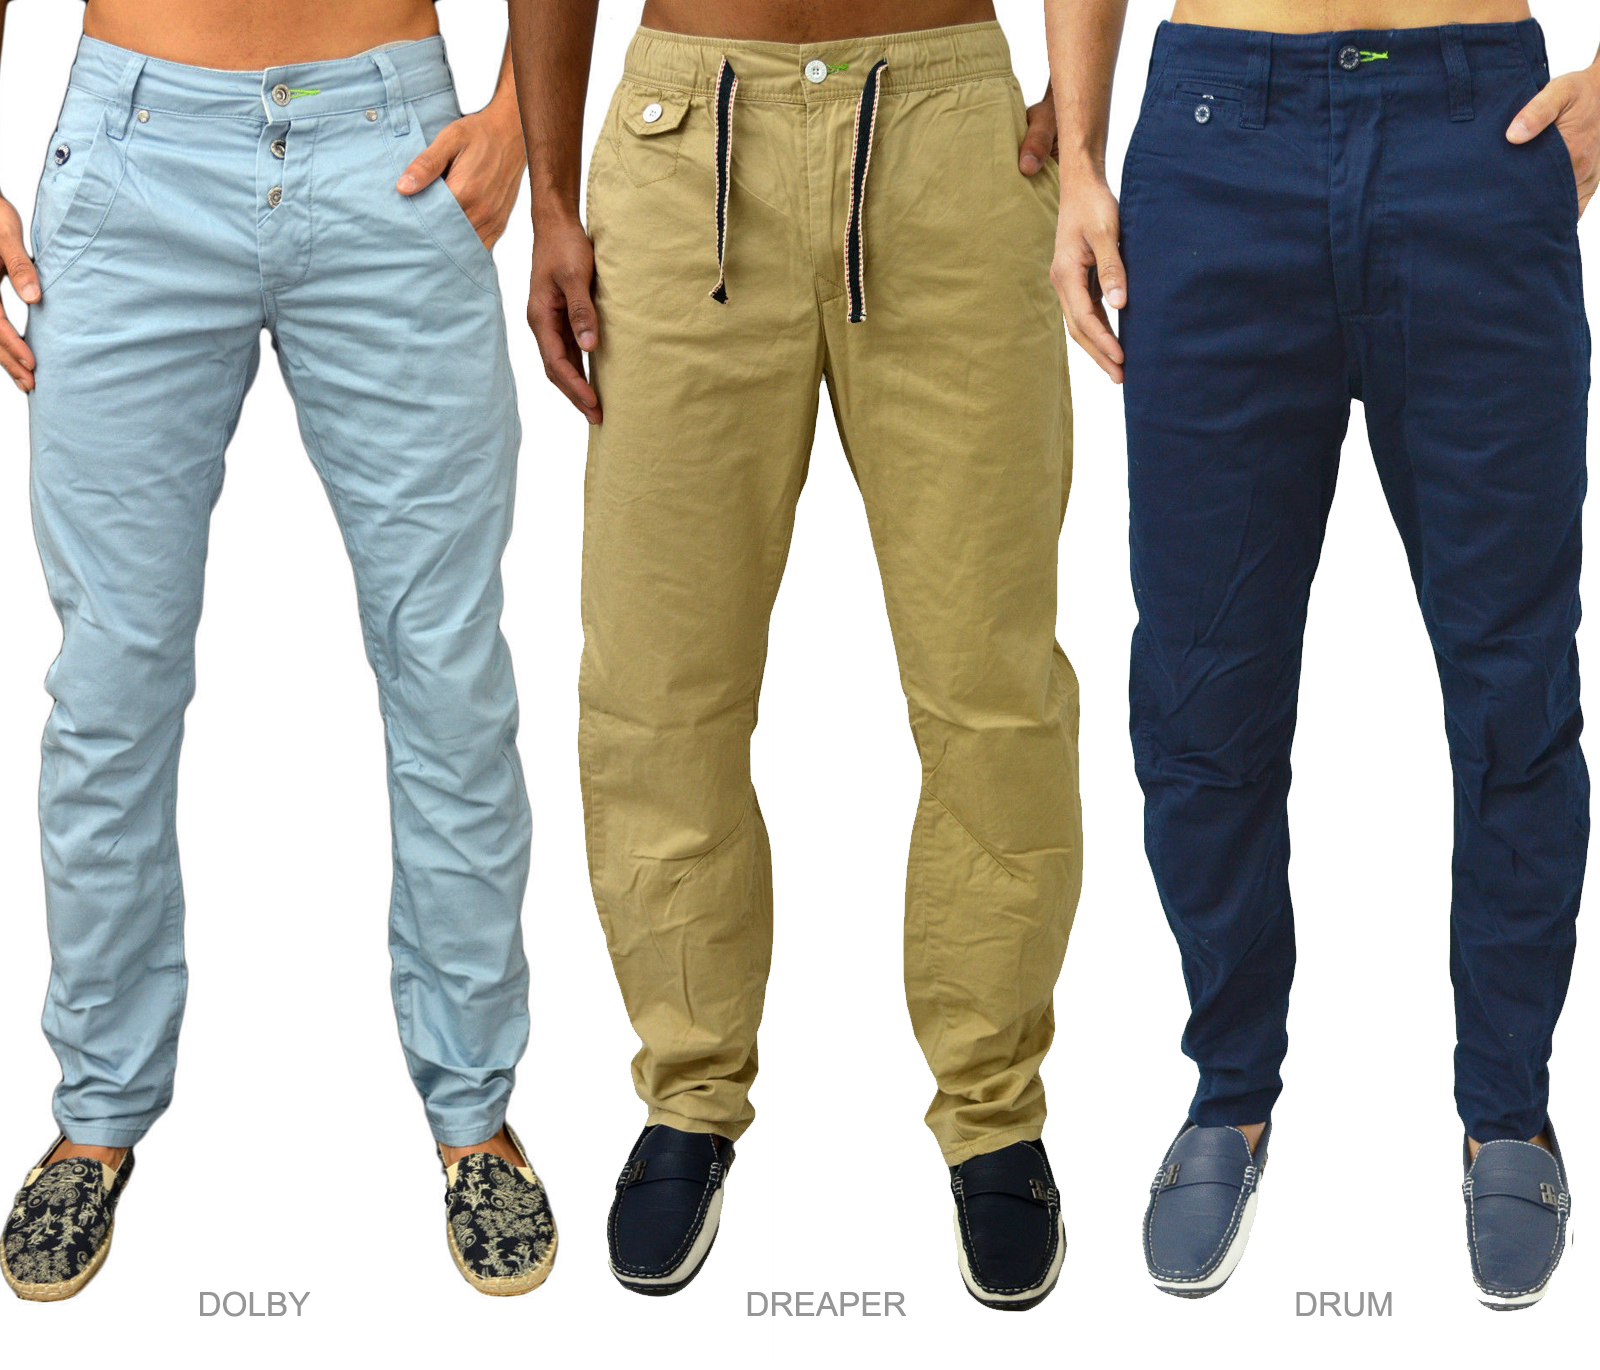 New Mens Designer Gio Goi Loose Carrot Fit Chino Trousers Fashion ...